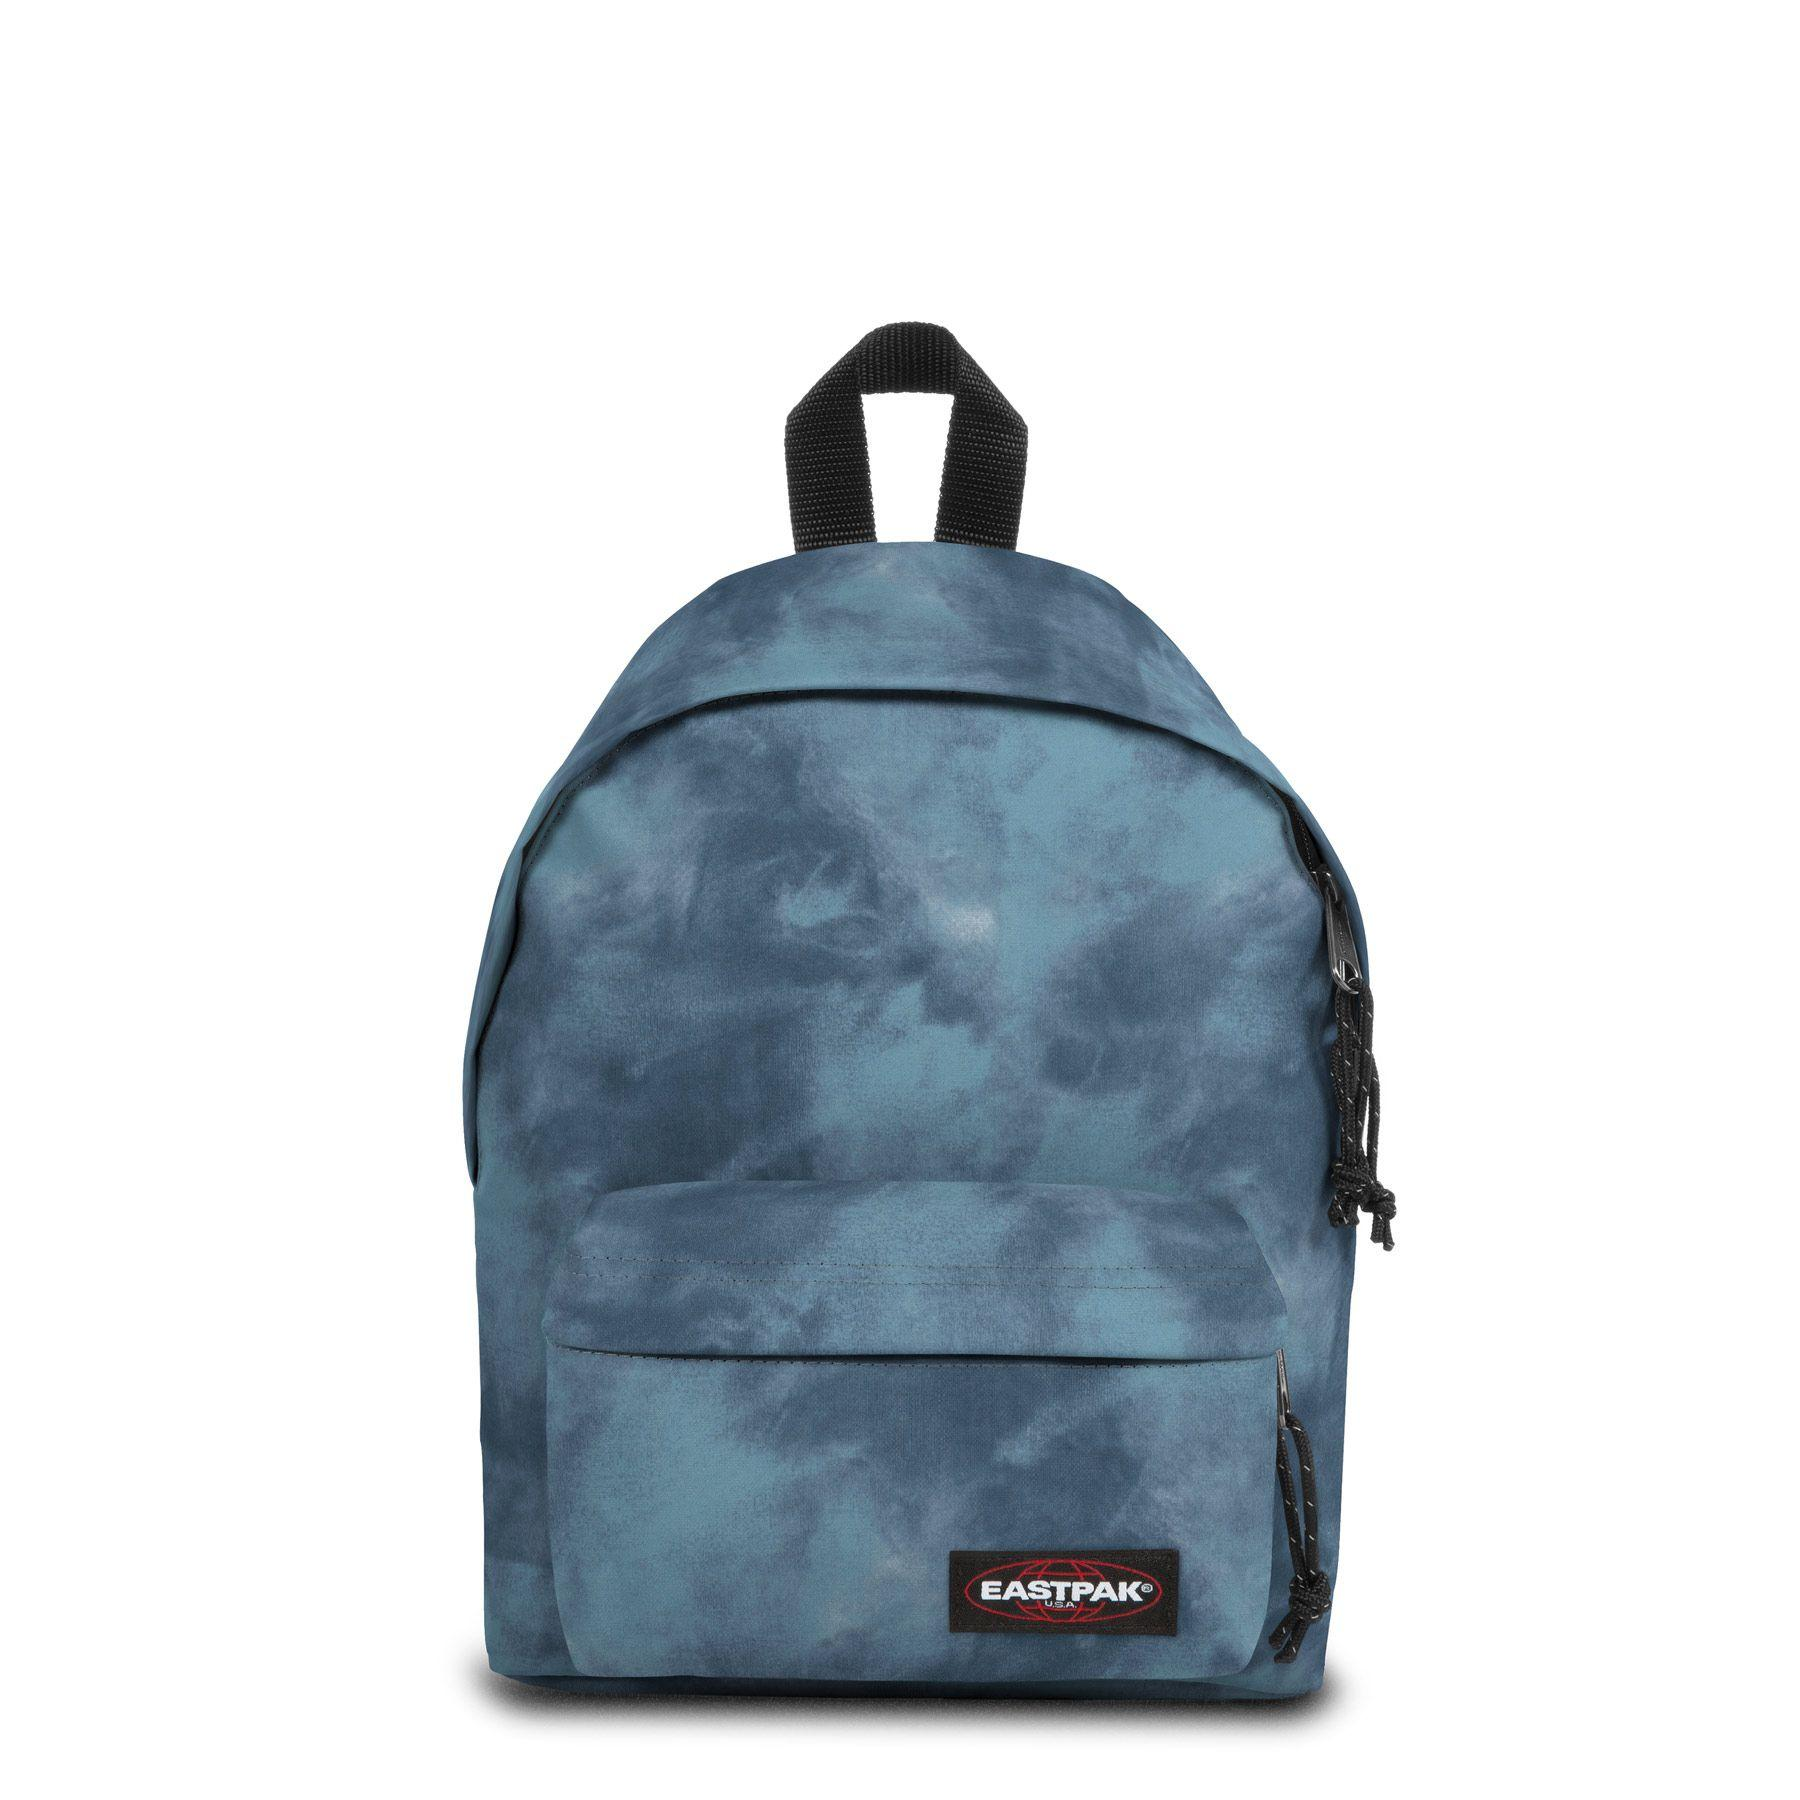 Eastpak Orbit Dust chilly